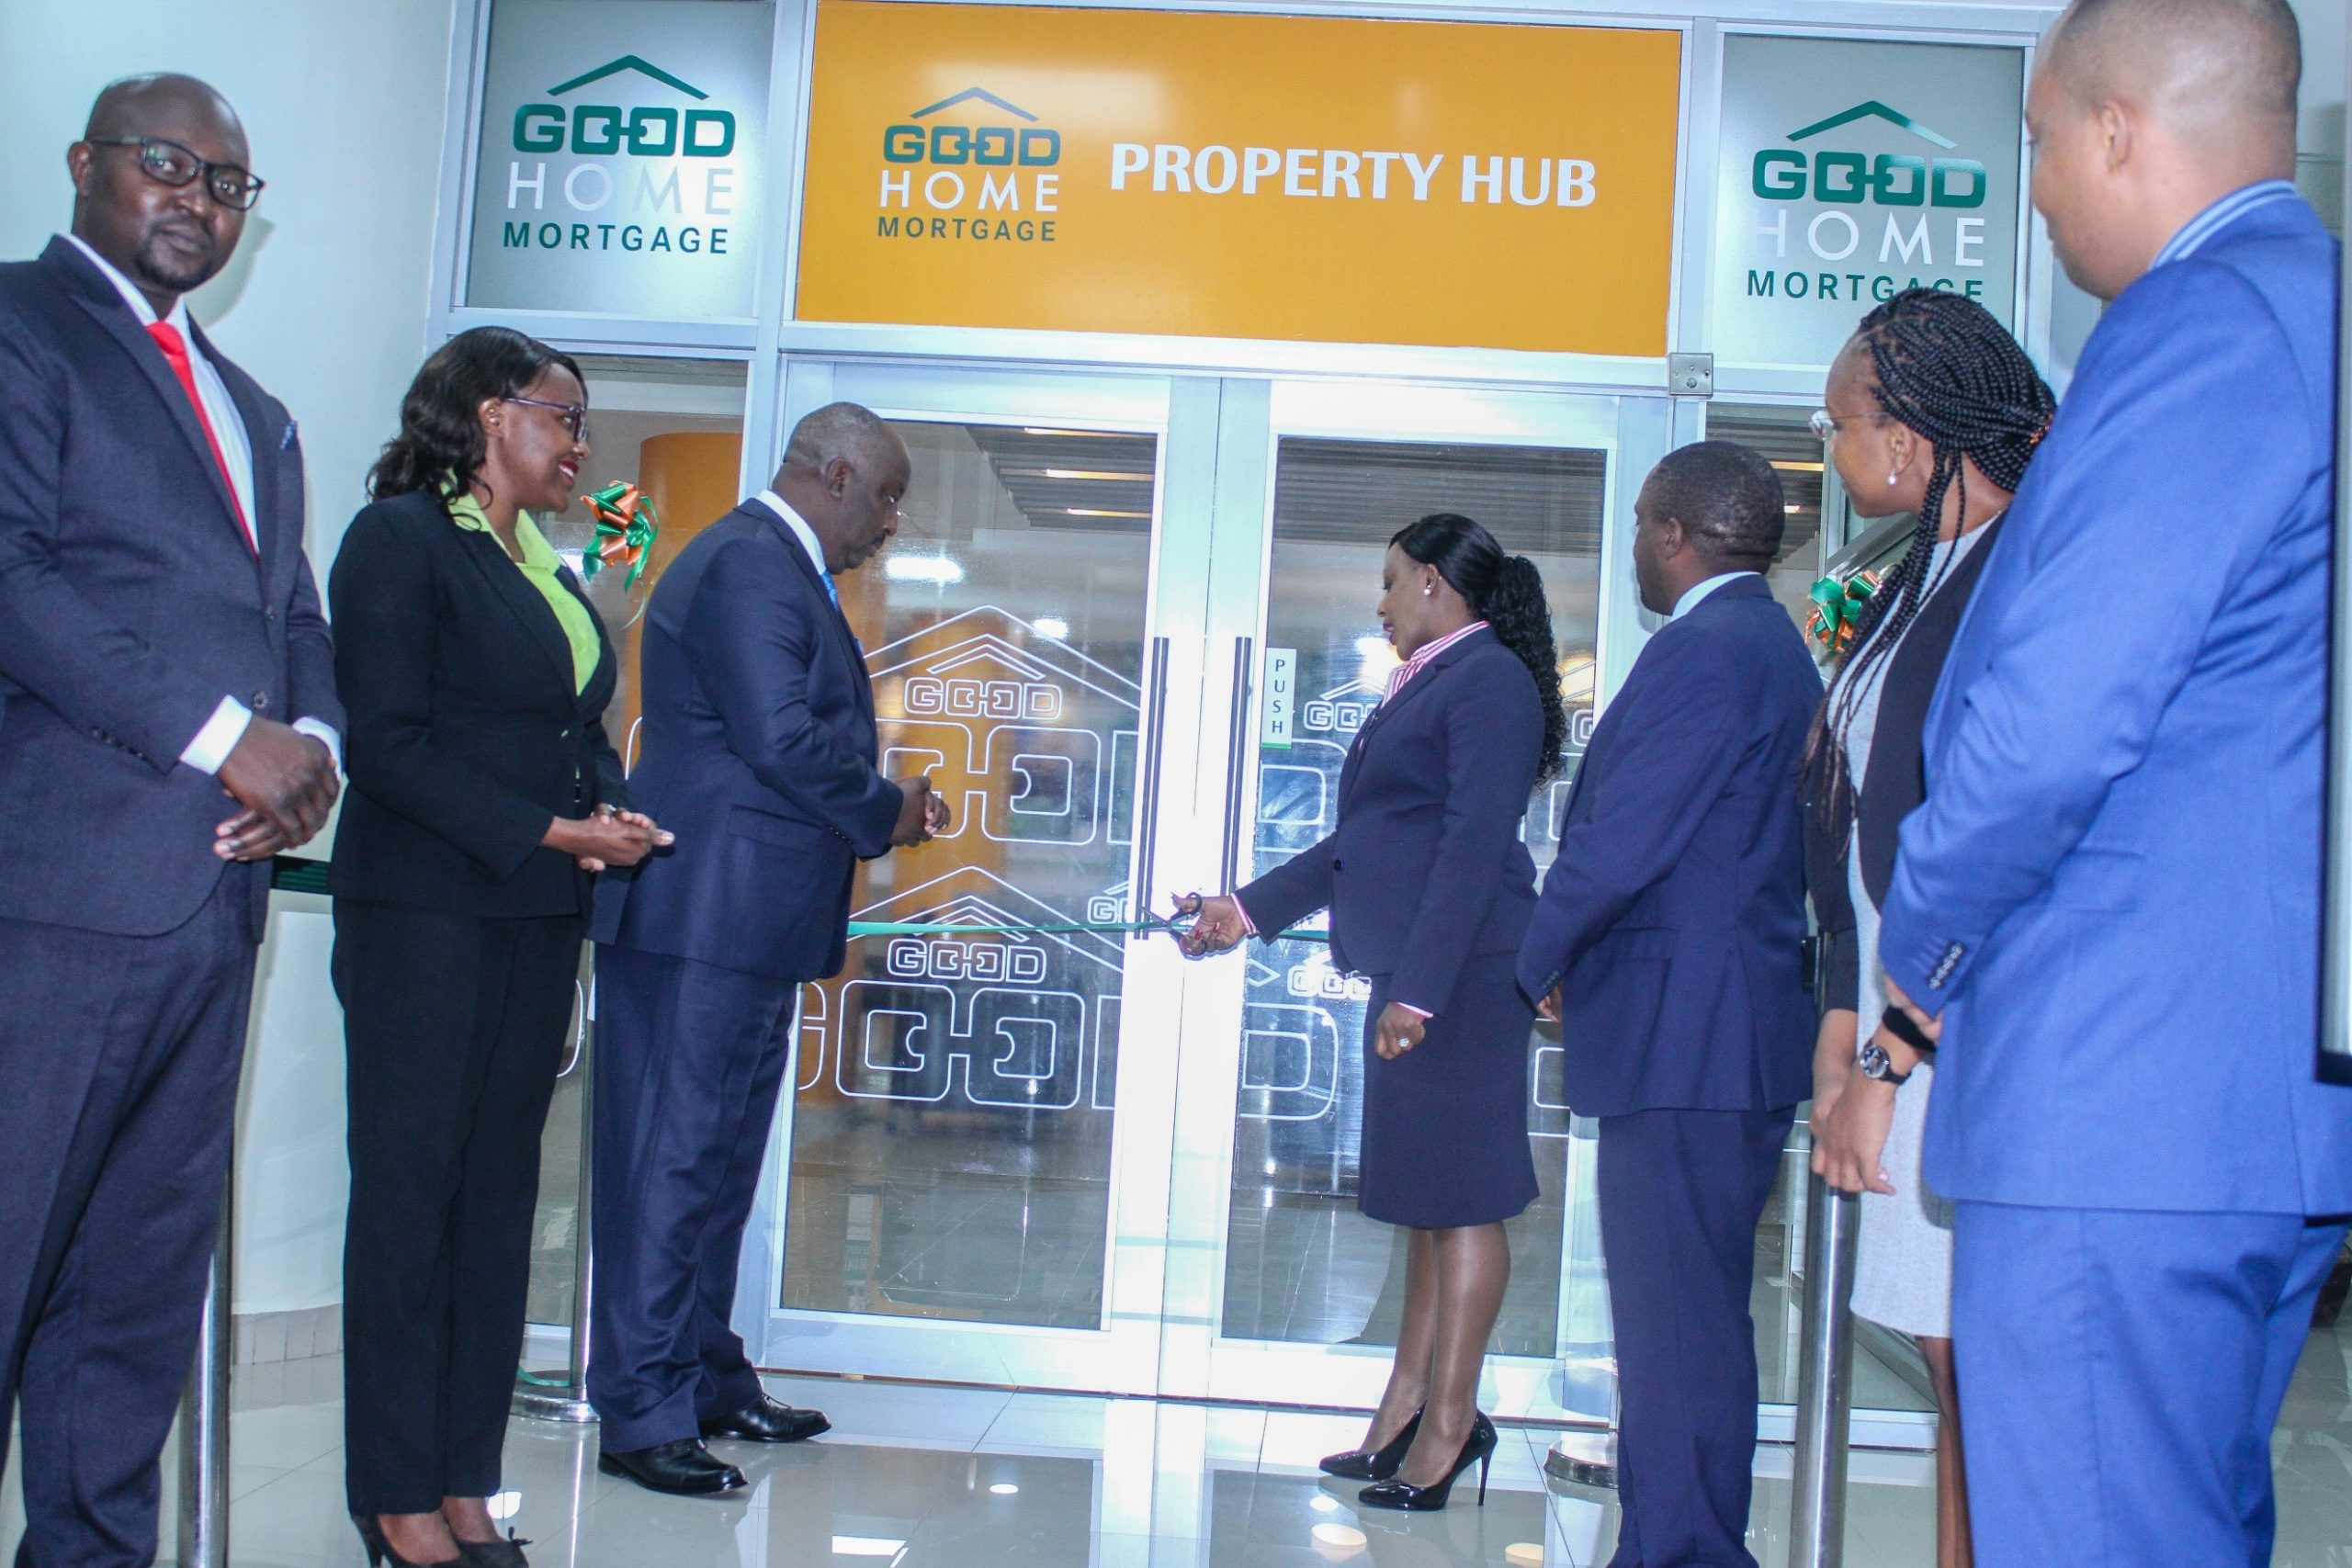 Chris Chege, the Head of Mortgage Finance at Co-operative Bank and Jacquelyne Waithaka, the bank's Director of Corporate & Institutional Banking launch the GoodHome Property Hub at KUSCCO Center, Upperhill on 28th September 2020. Looking on are Patrick Macharia, the Property Hub Manager and other members of staff who serve customers at the Property Hub.